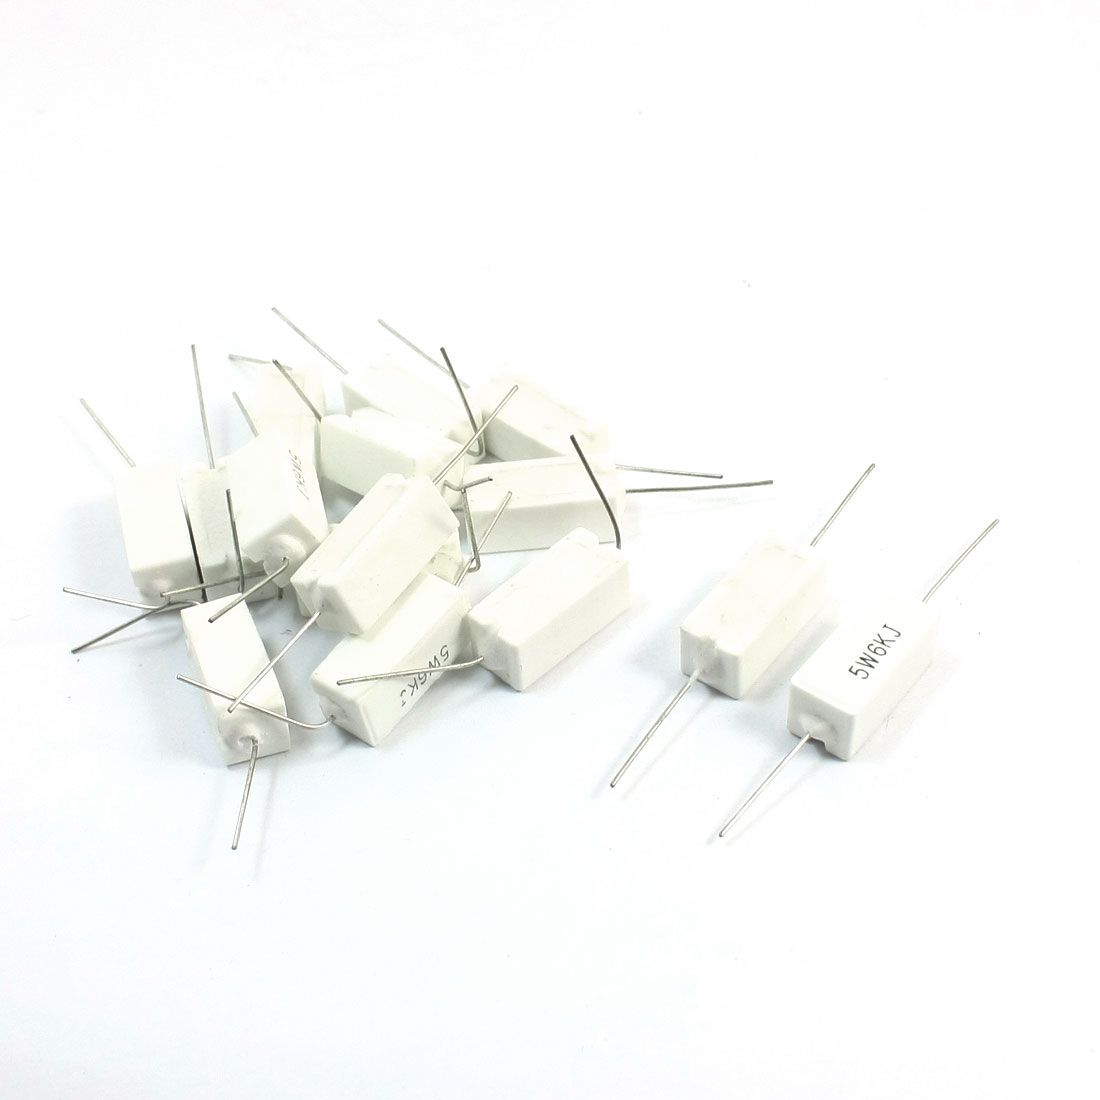 15pcs 6K Ohm 5% Radial Lead Rectangle Ceramic Cement Resistors 5W